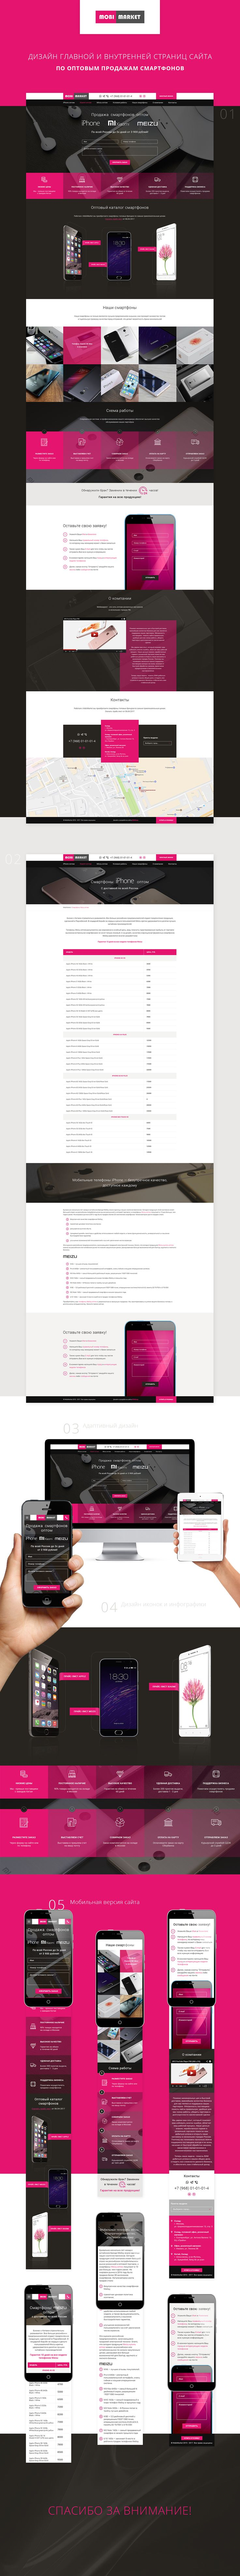 Design of the site for MobiMarket